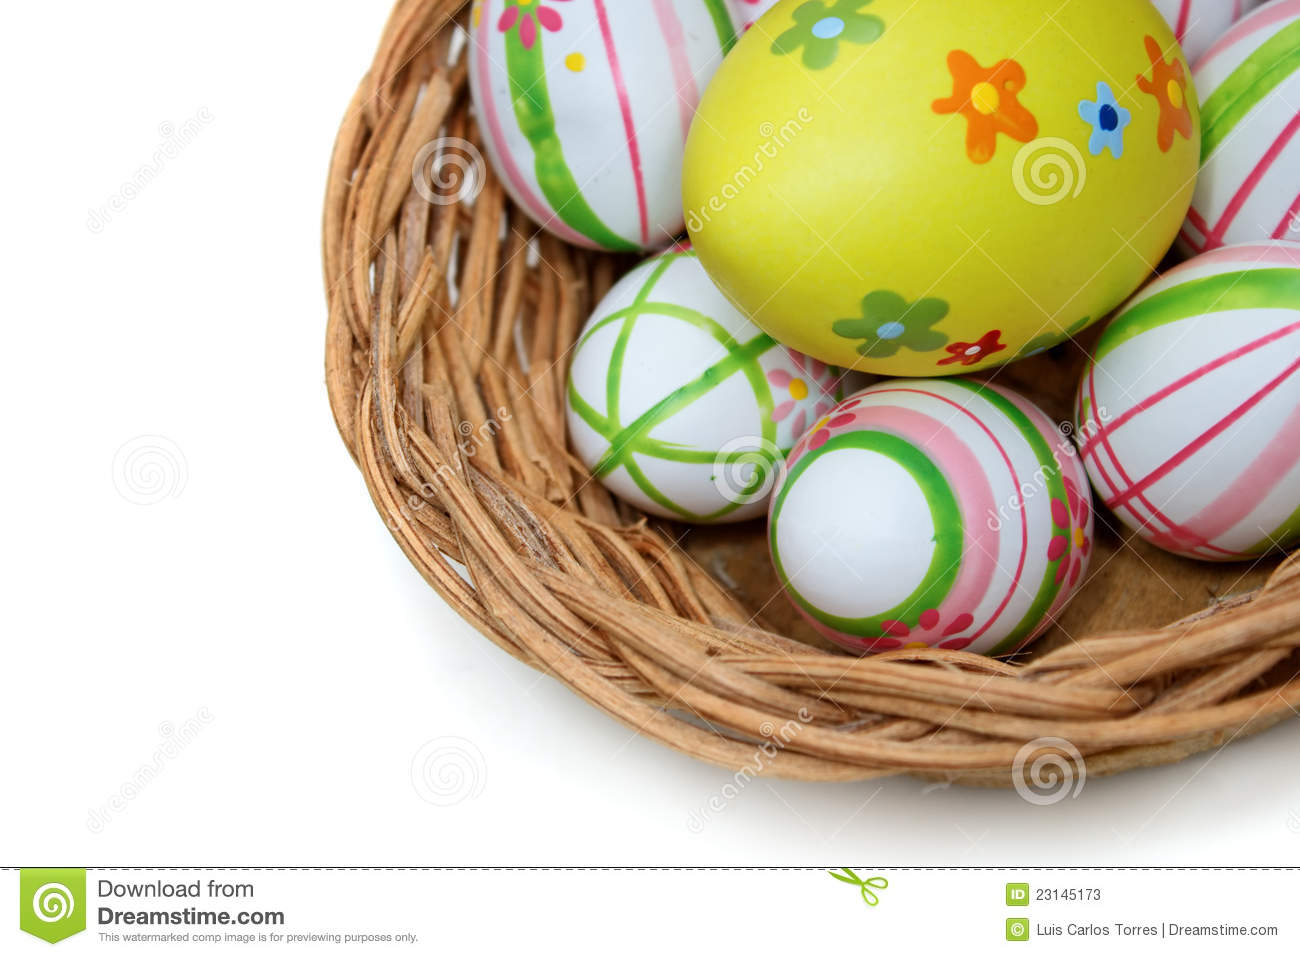 Easter eggs in a basket from top right